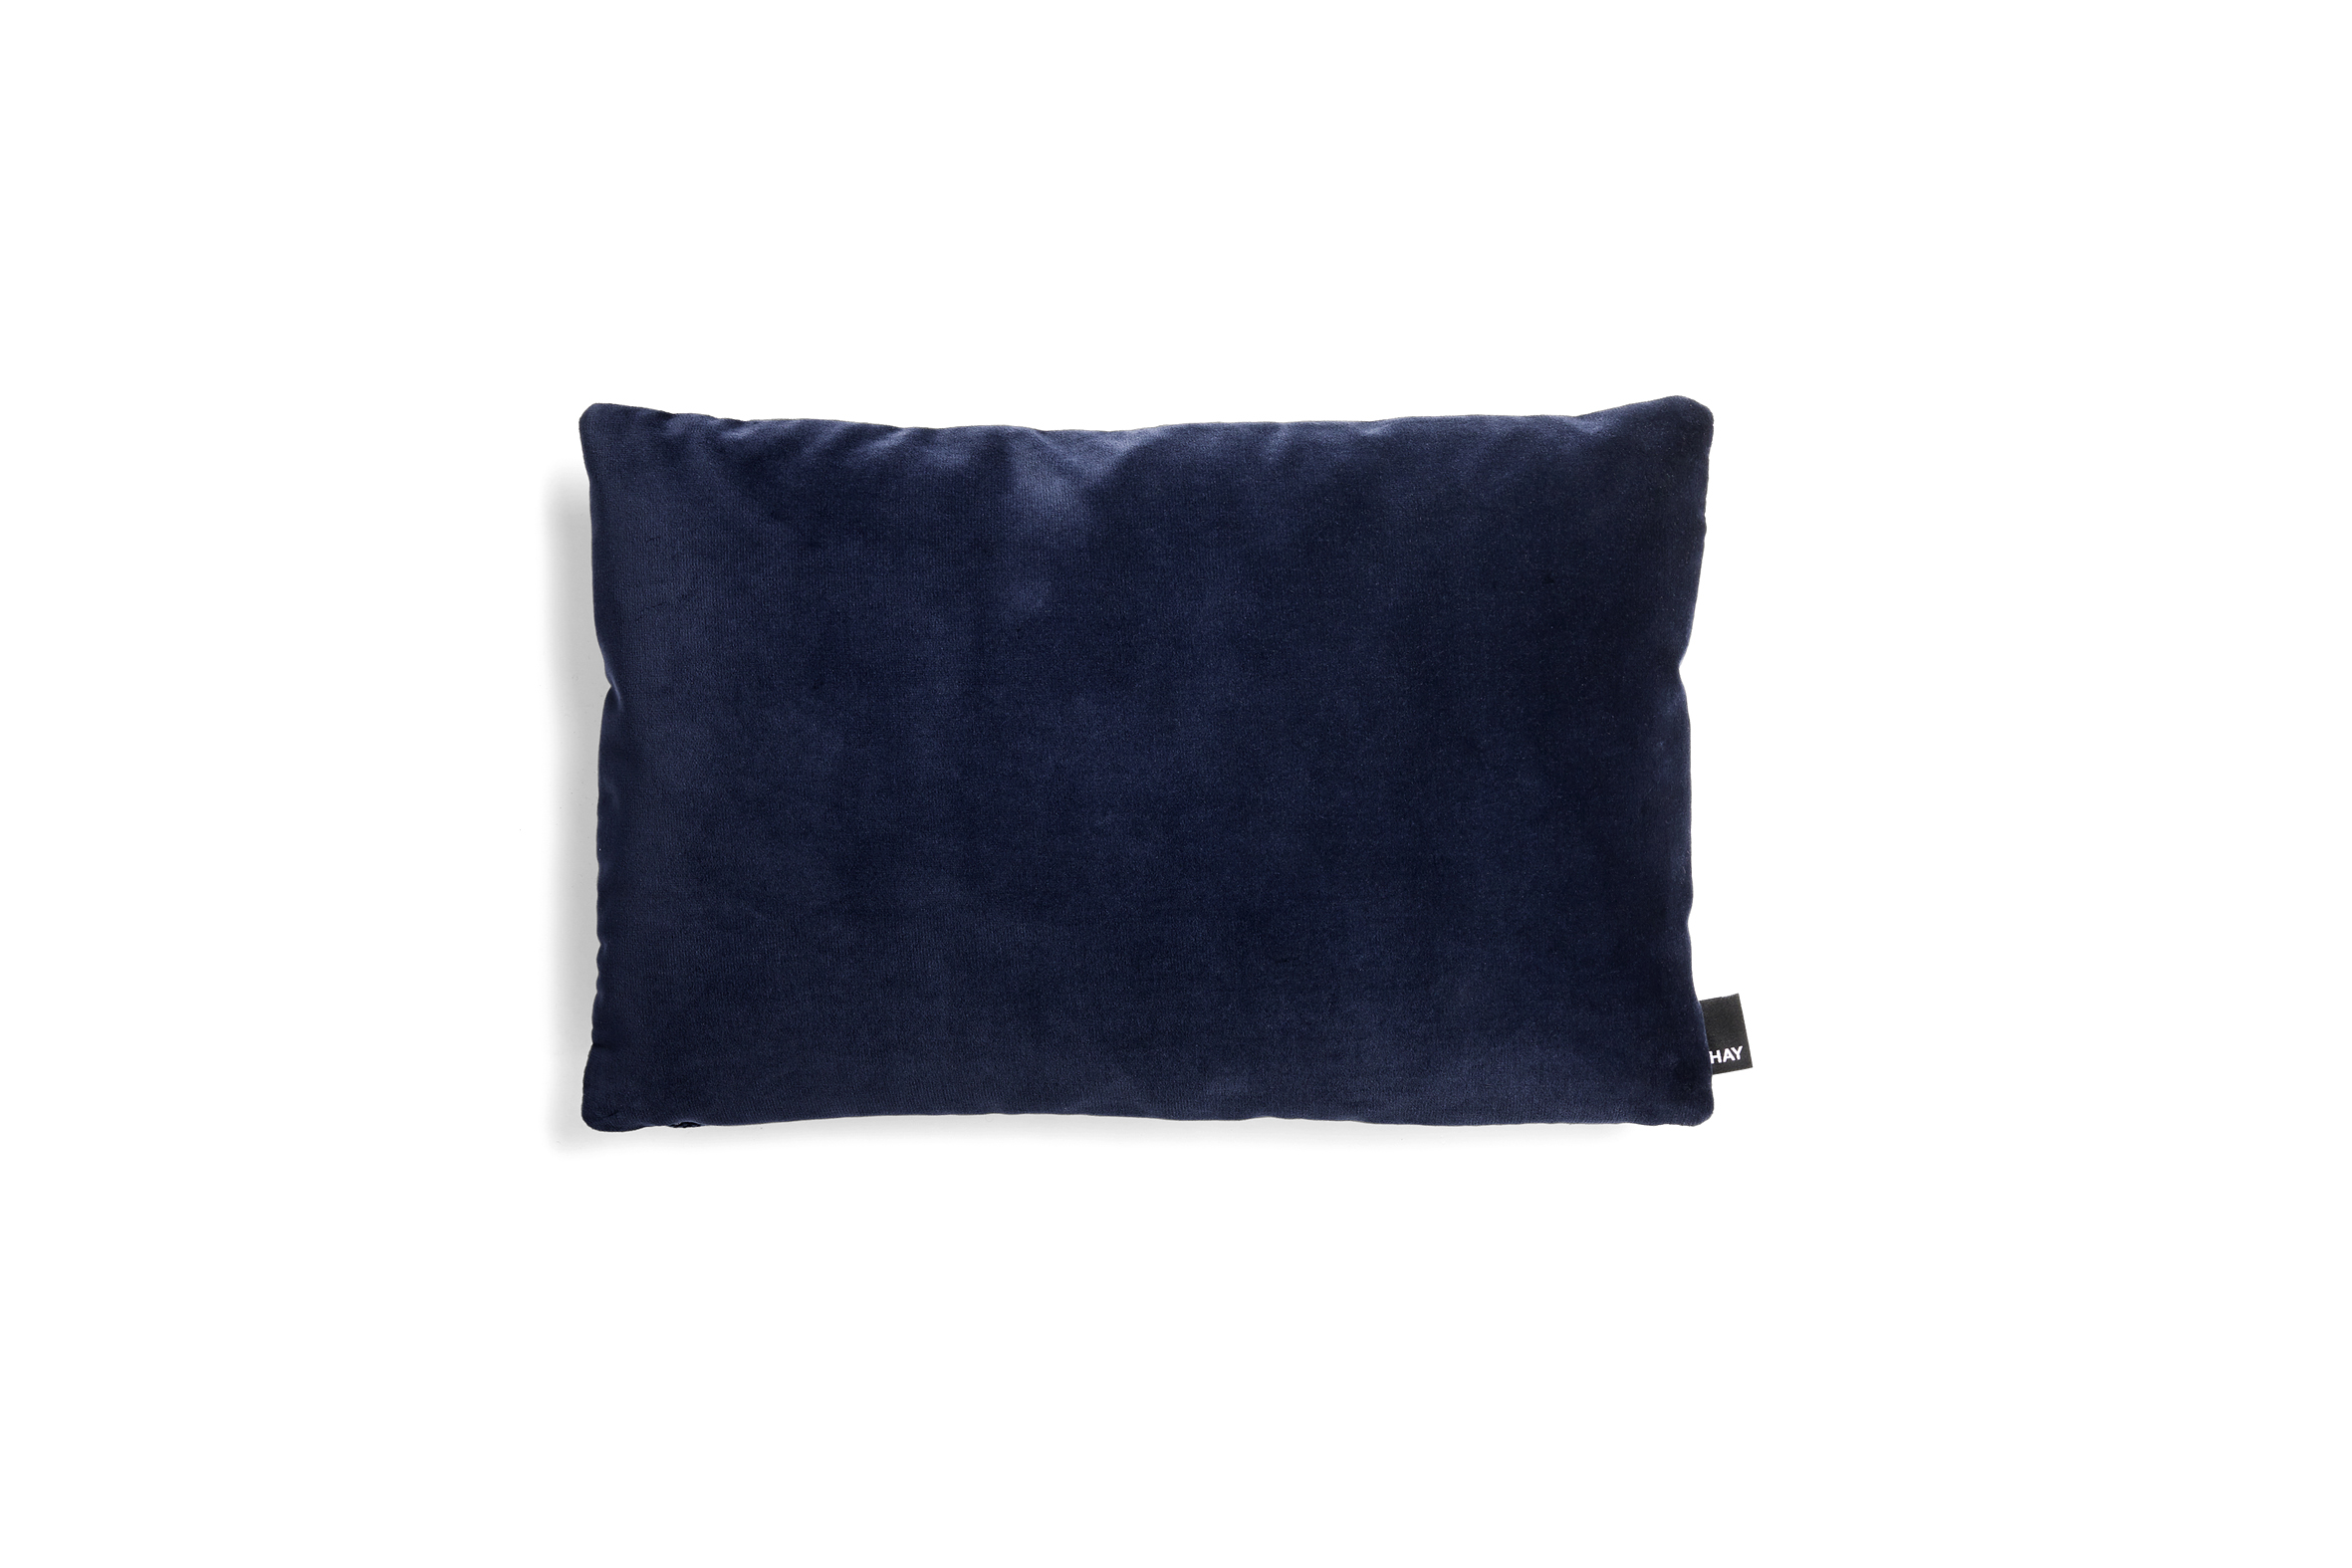 Eclectic cushion 45x30 soft navy